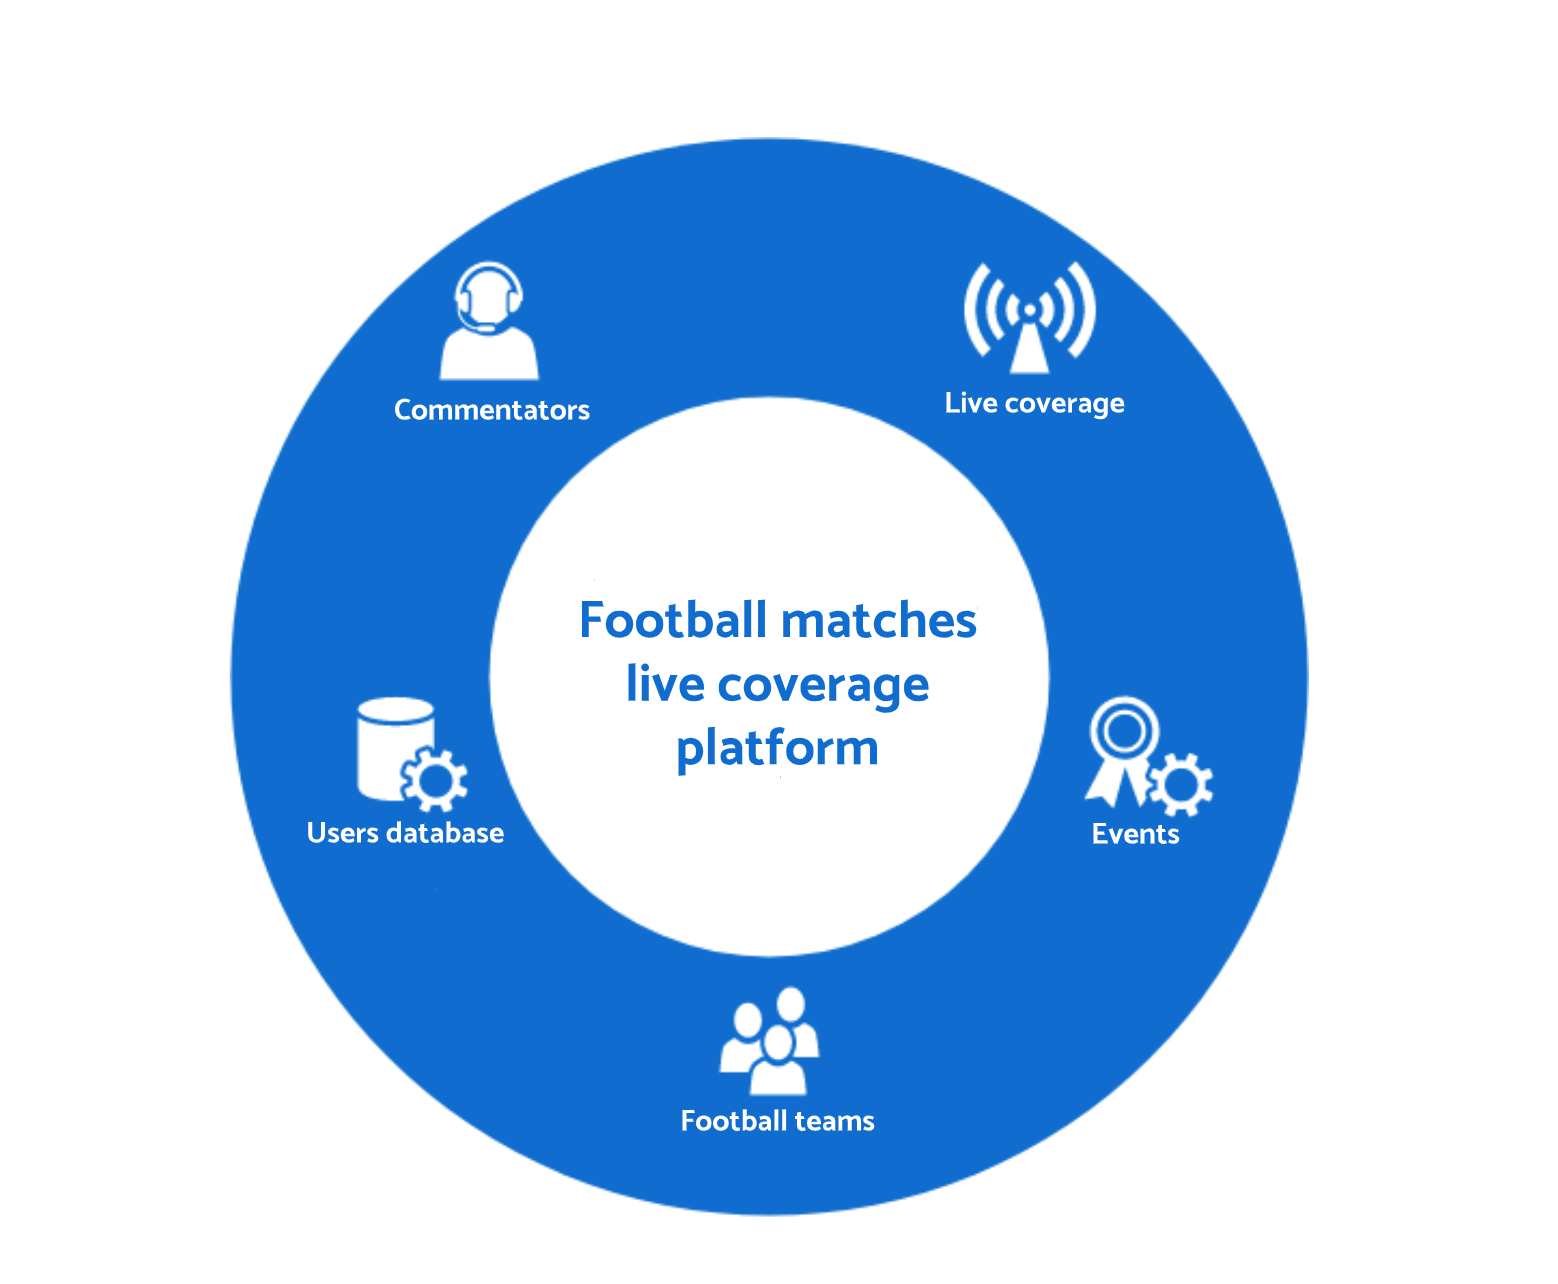 A diagram showing elements of football matches live coverage platform.